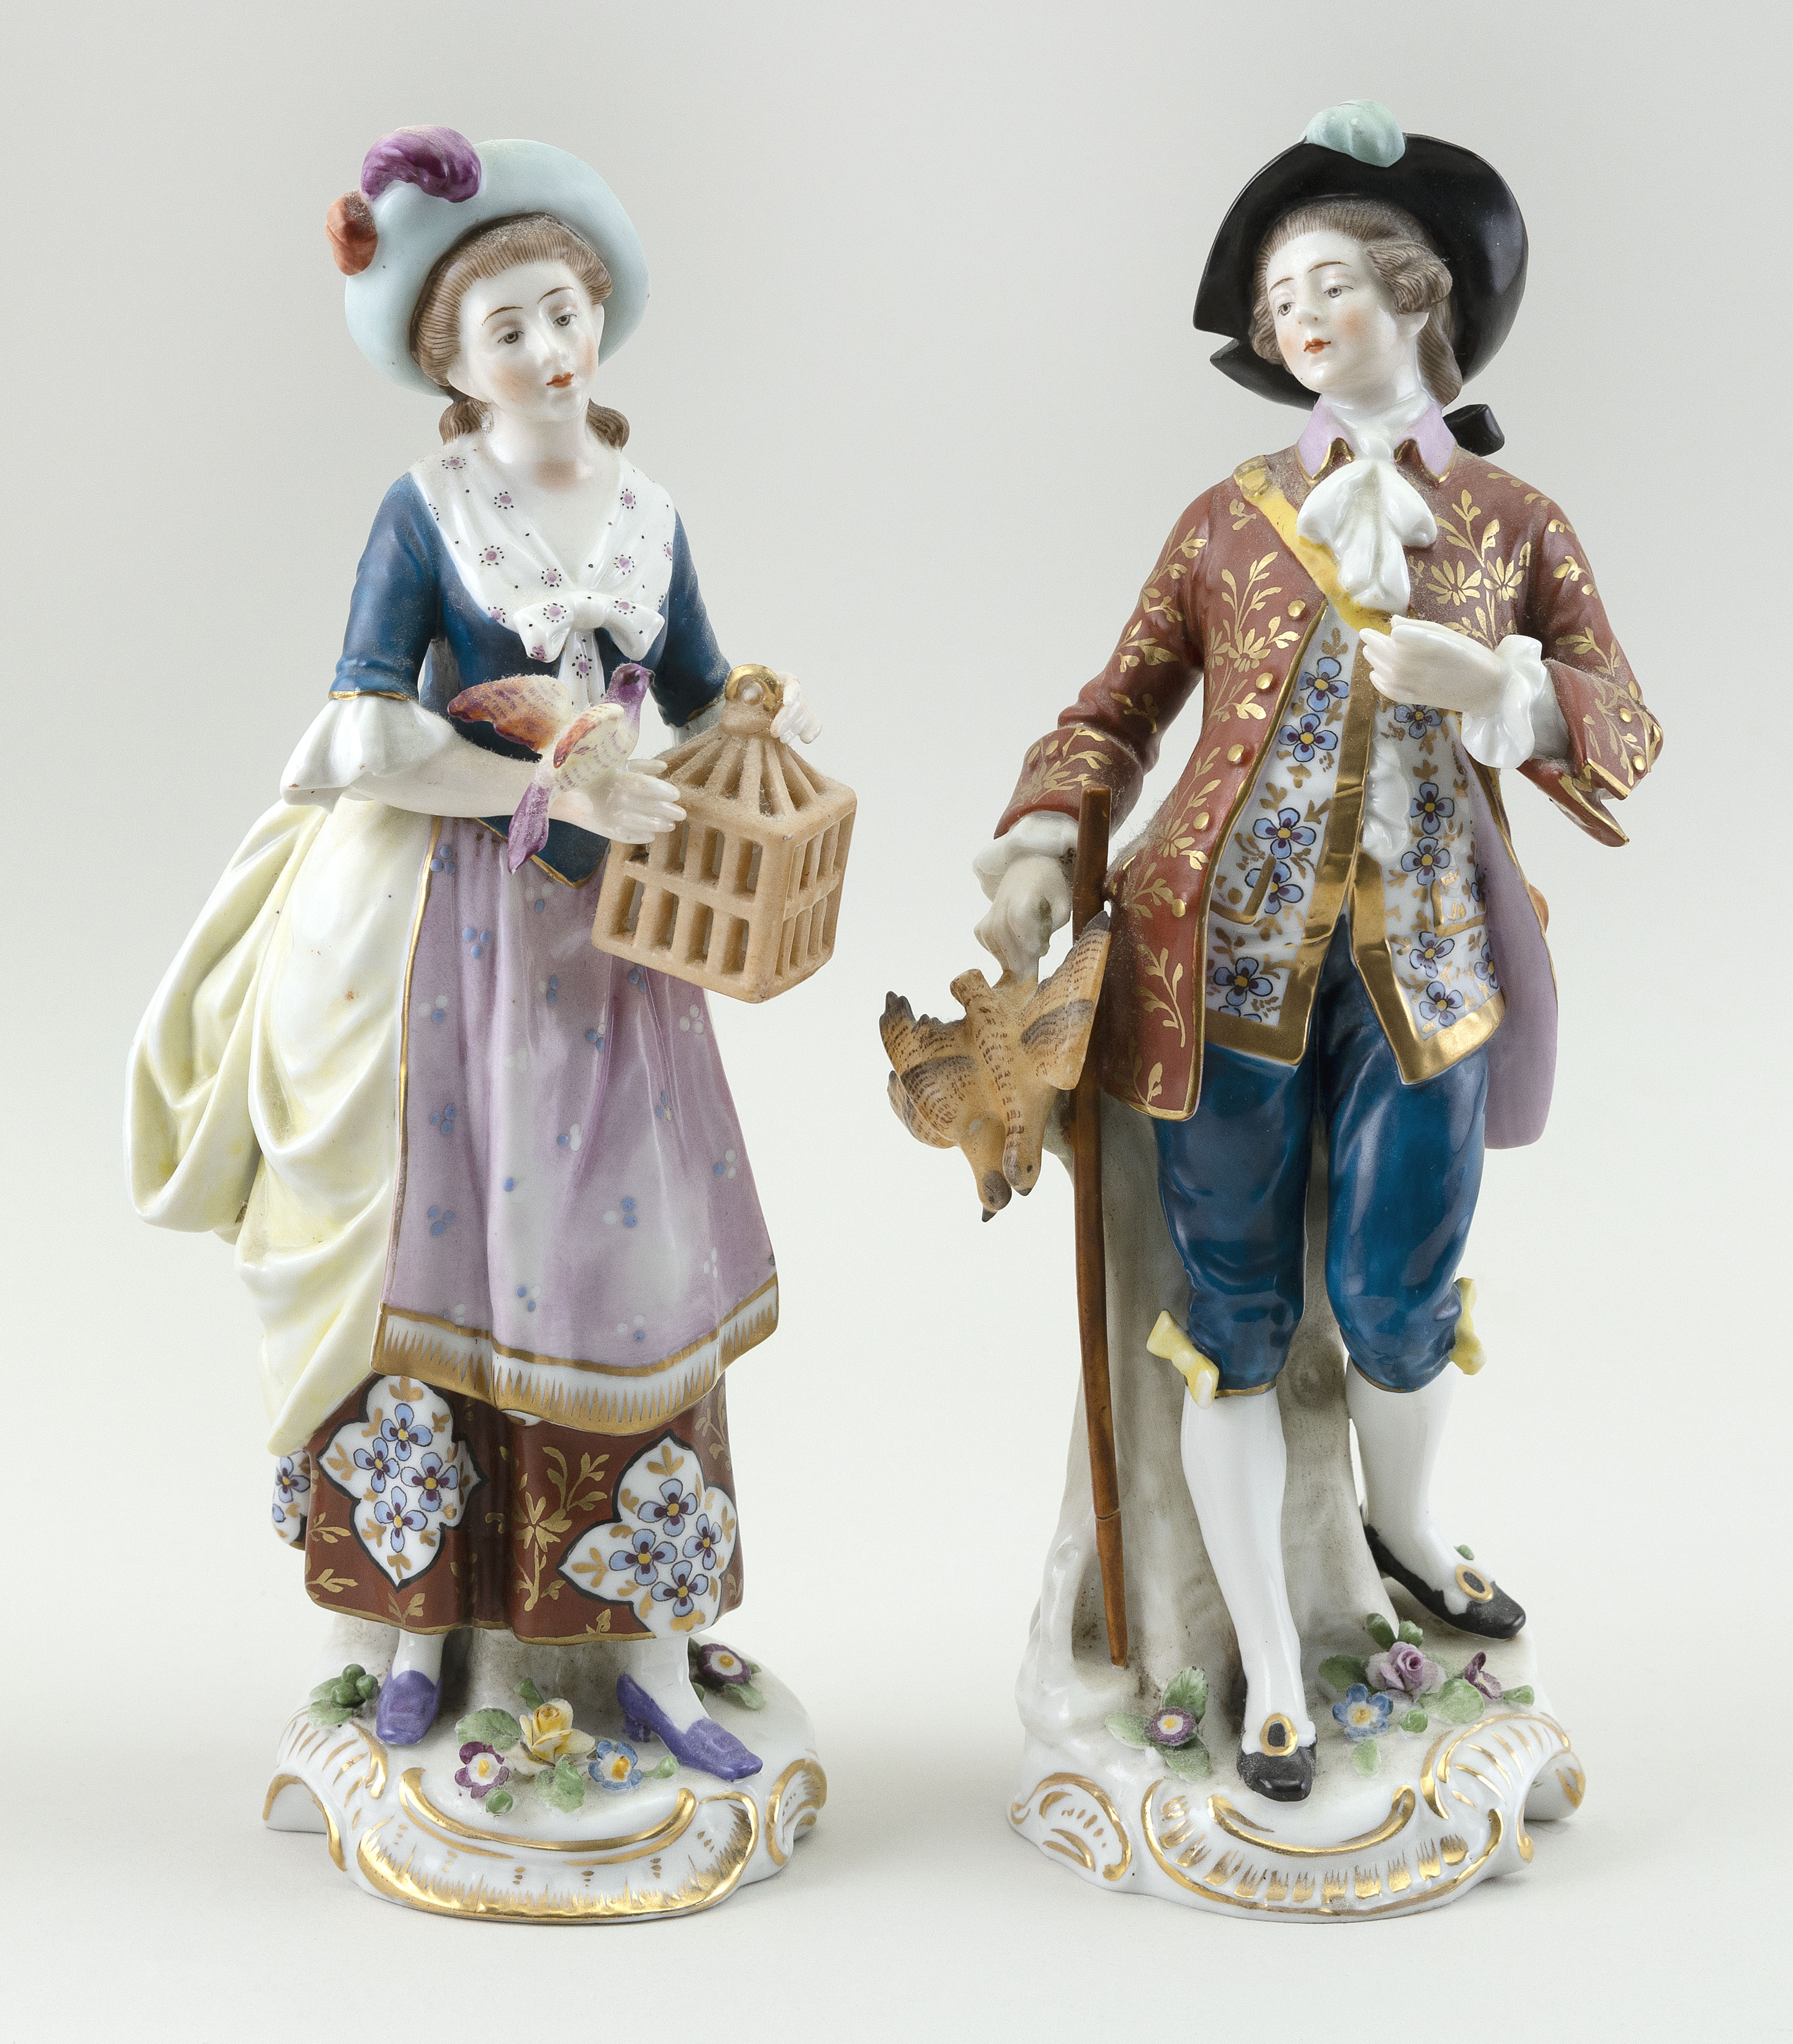 """PAIR OF CHELSEA PORCELAIN FIGURES England, Circa 1820 Heights to 9.5""""."""